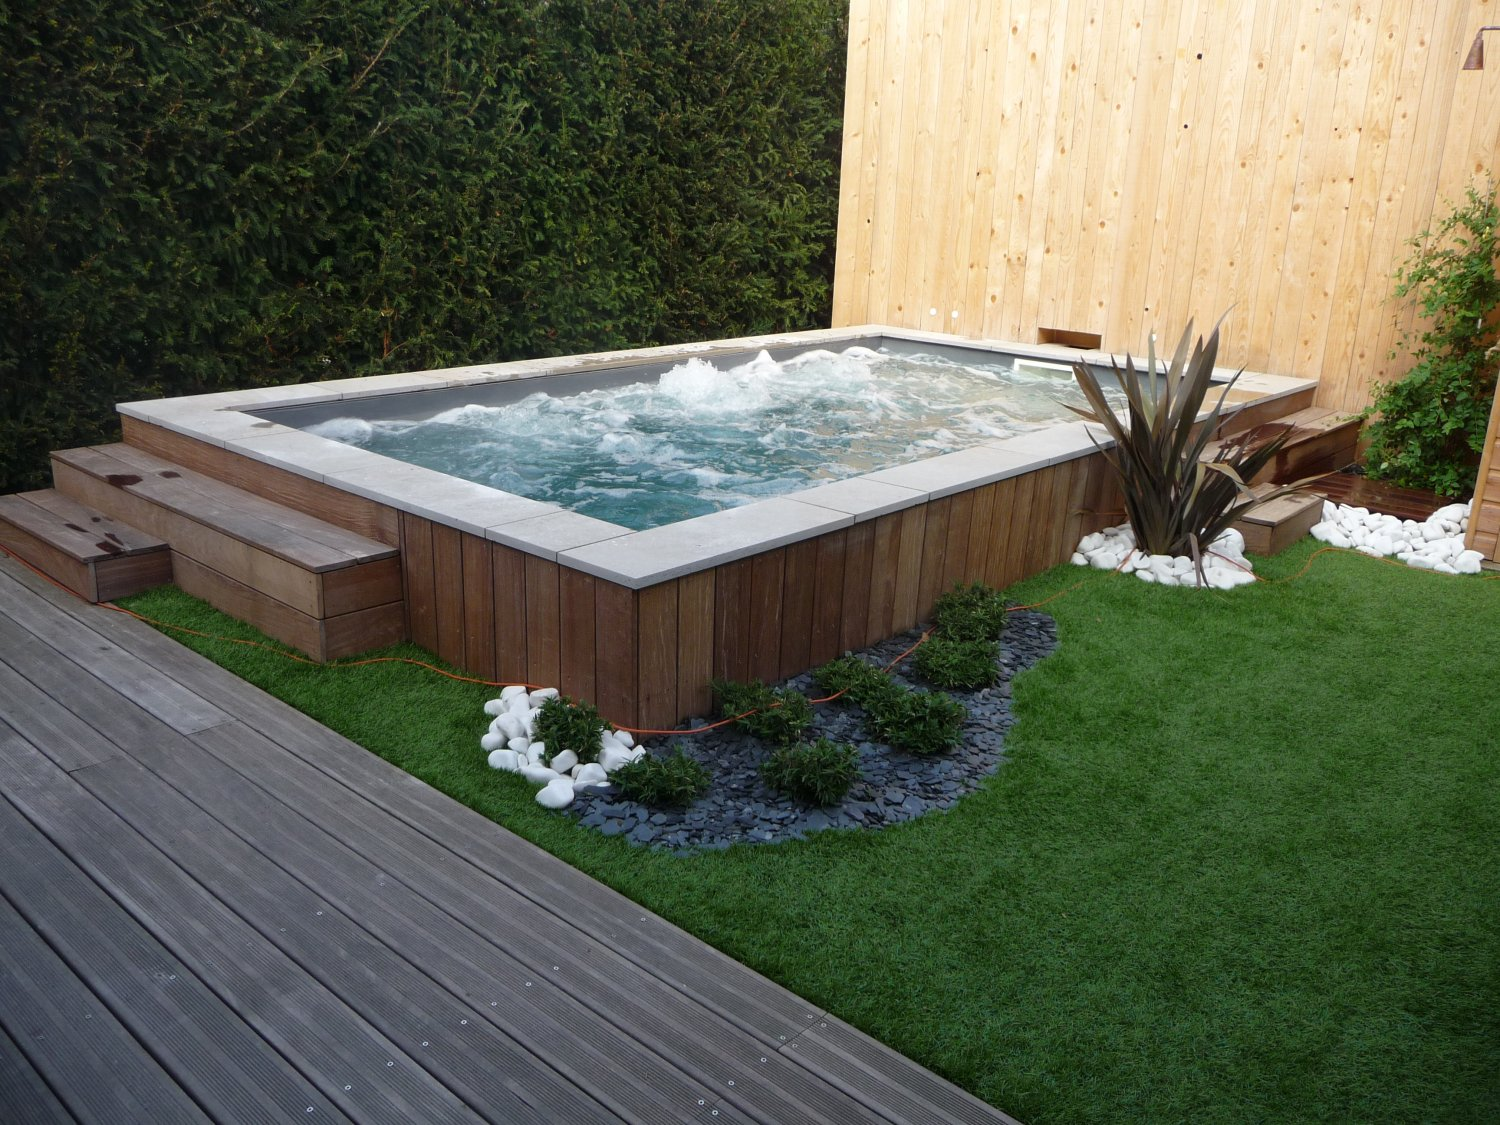 Am nager son jardin ext rieur faire une terrasse en bois for Amenagement de piscine exterieur